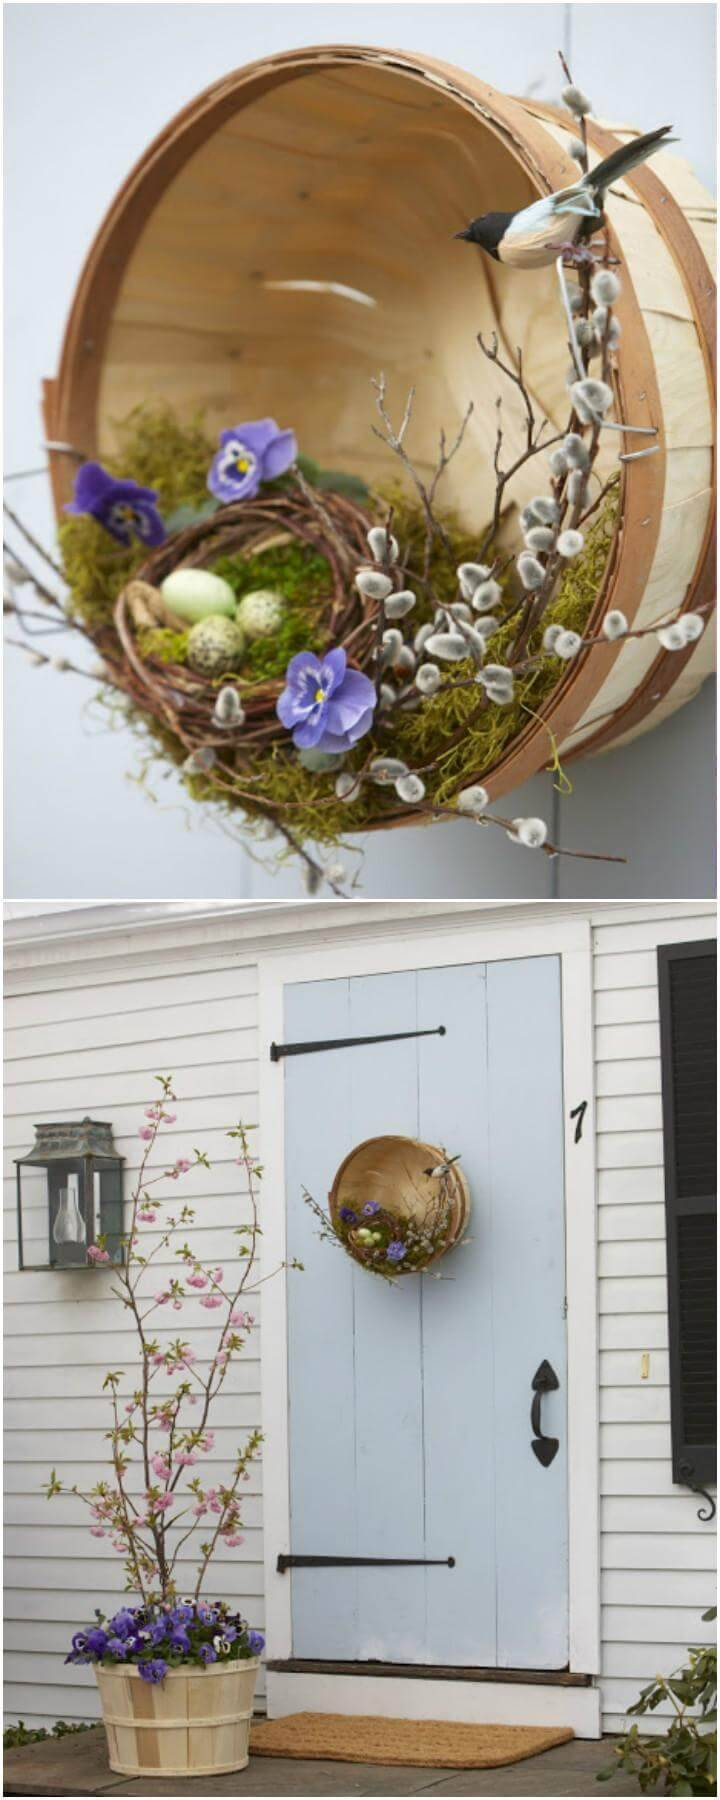 DIY Front Door Wreath Basket